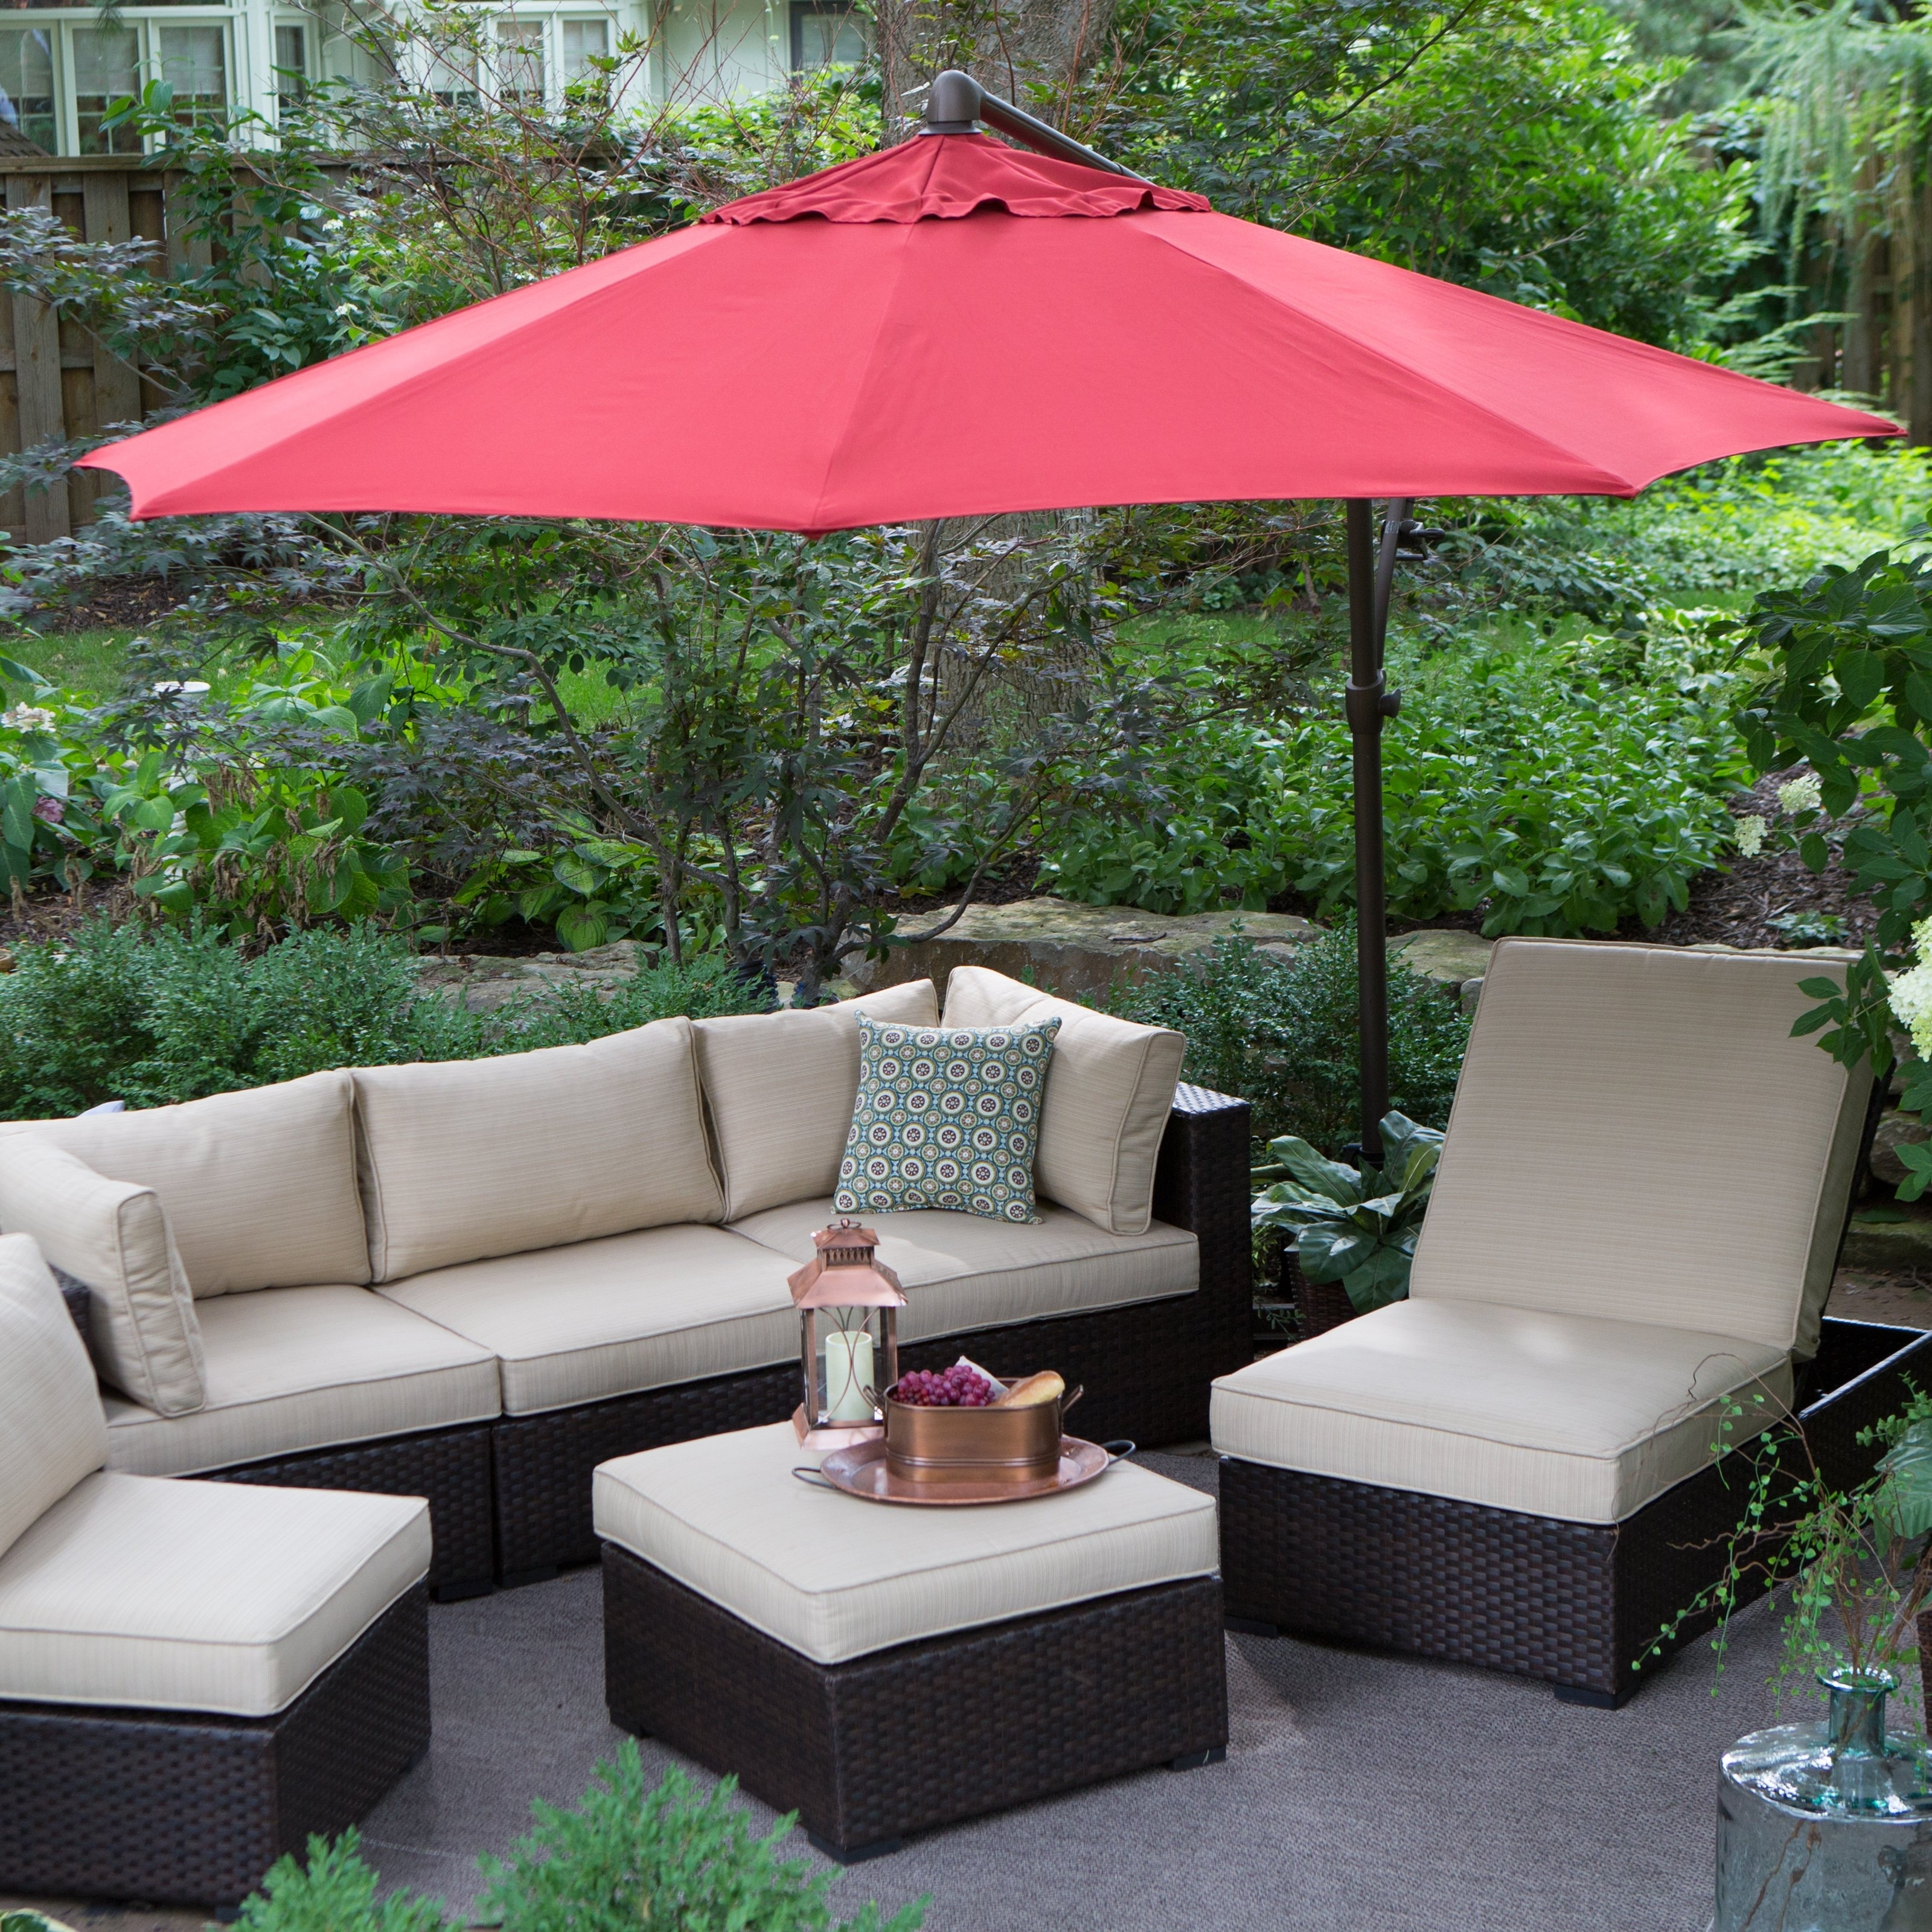 Newest Sunbrella Patio Umbrellas At Walmart Intended For Treasure Garden 10 Ft (View 13 of 20)